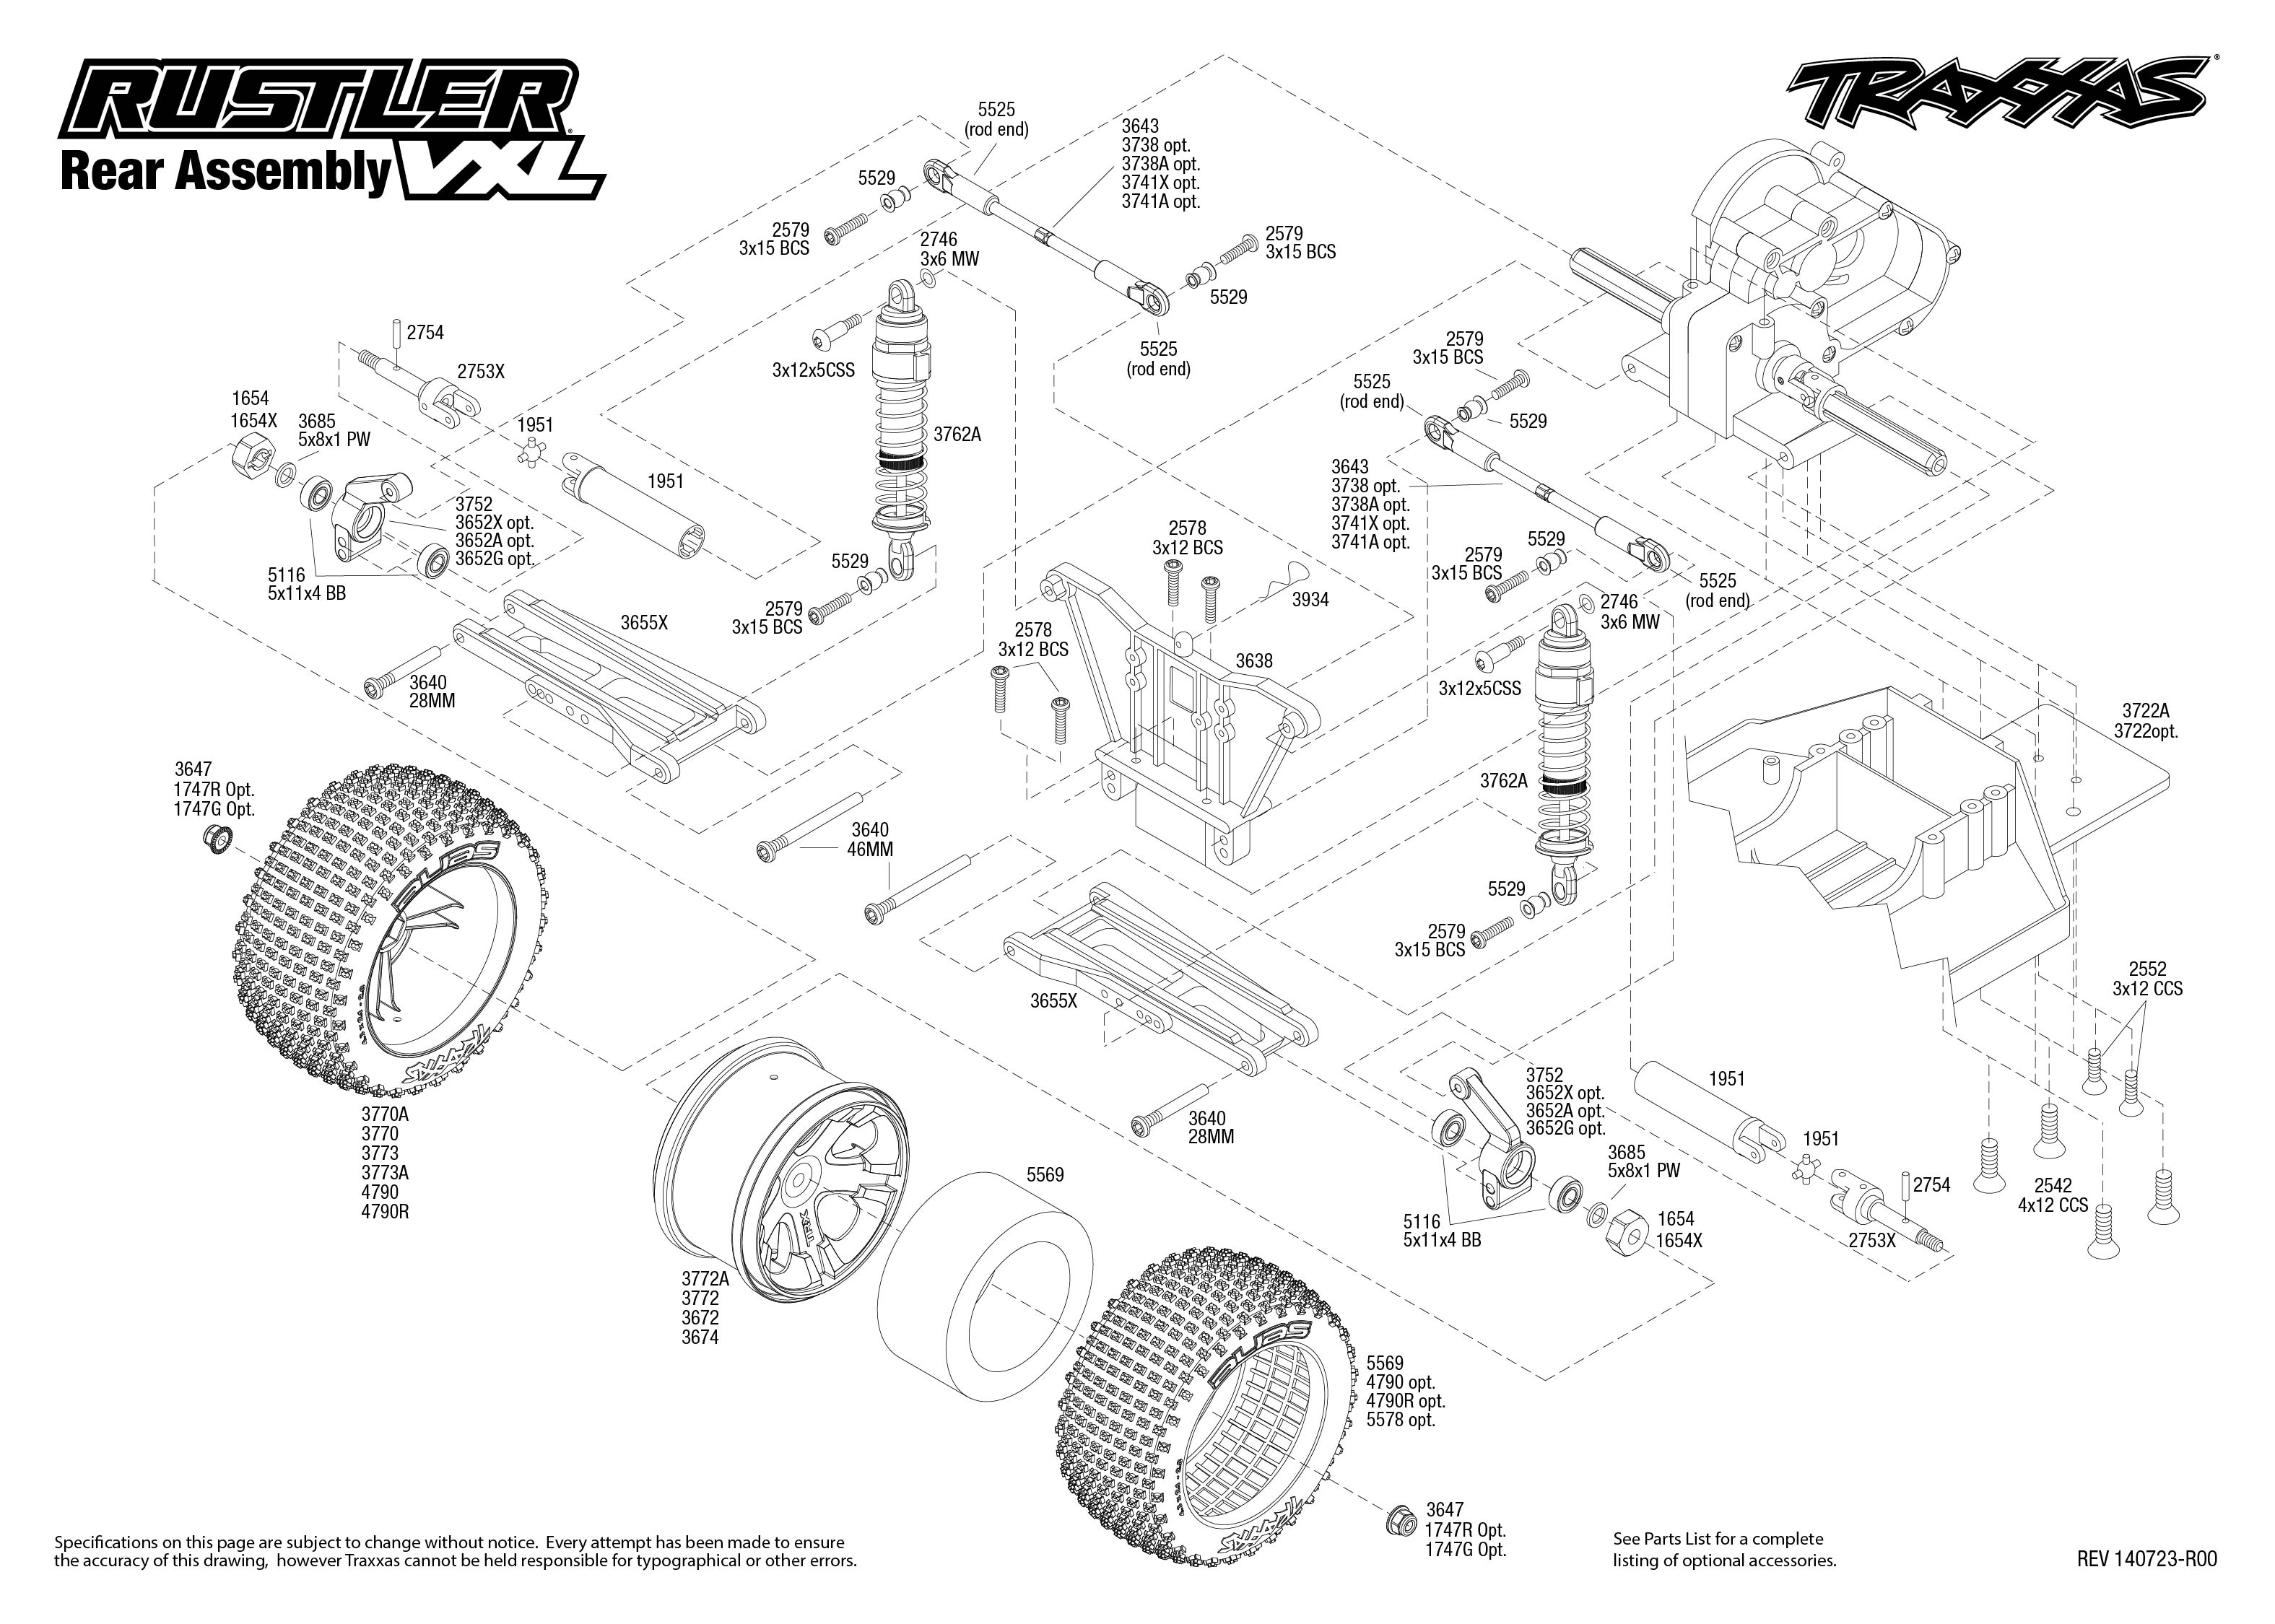 Rustler Vxl 1 Rear Assembly Exploded View